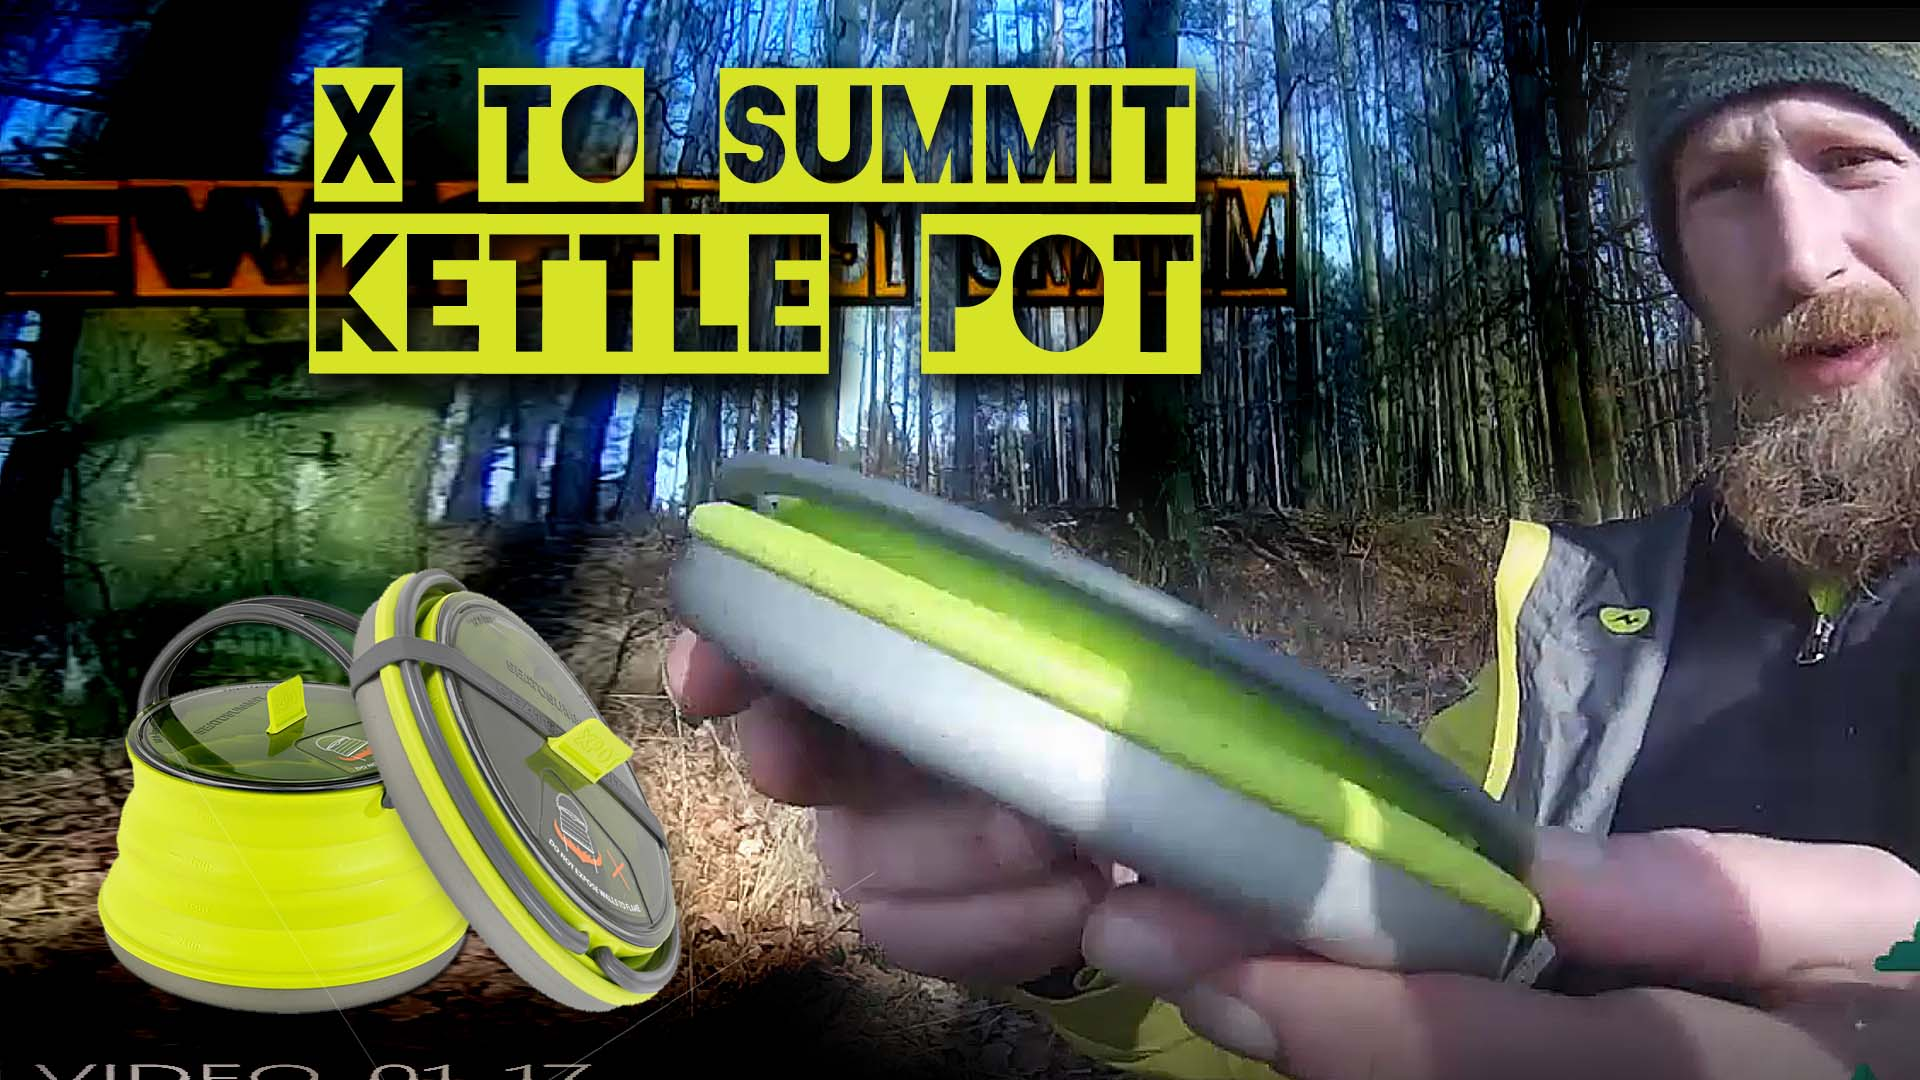 [:de]SEA TO SUMMIT - X-POT KETTLE _ Ultra-leicht UL Campinggeschirr aus Silikon[:en]Sea to Summit - X-POT KETTLE _ Ultra-light UL Camping tableware made of silicone[:]